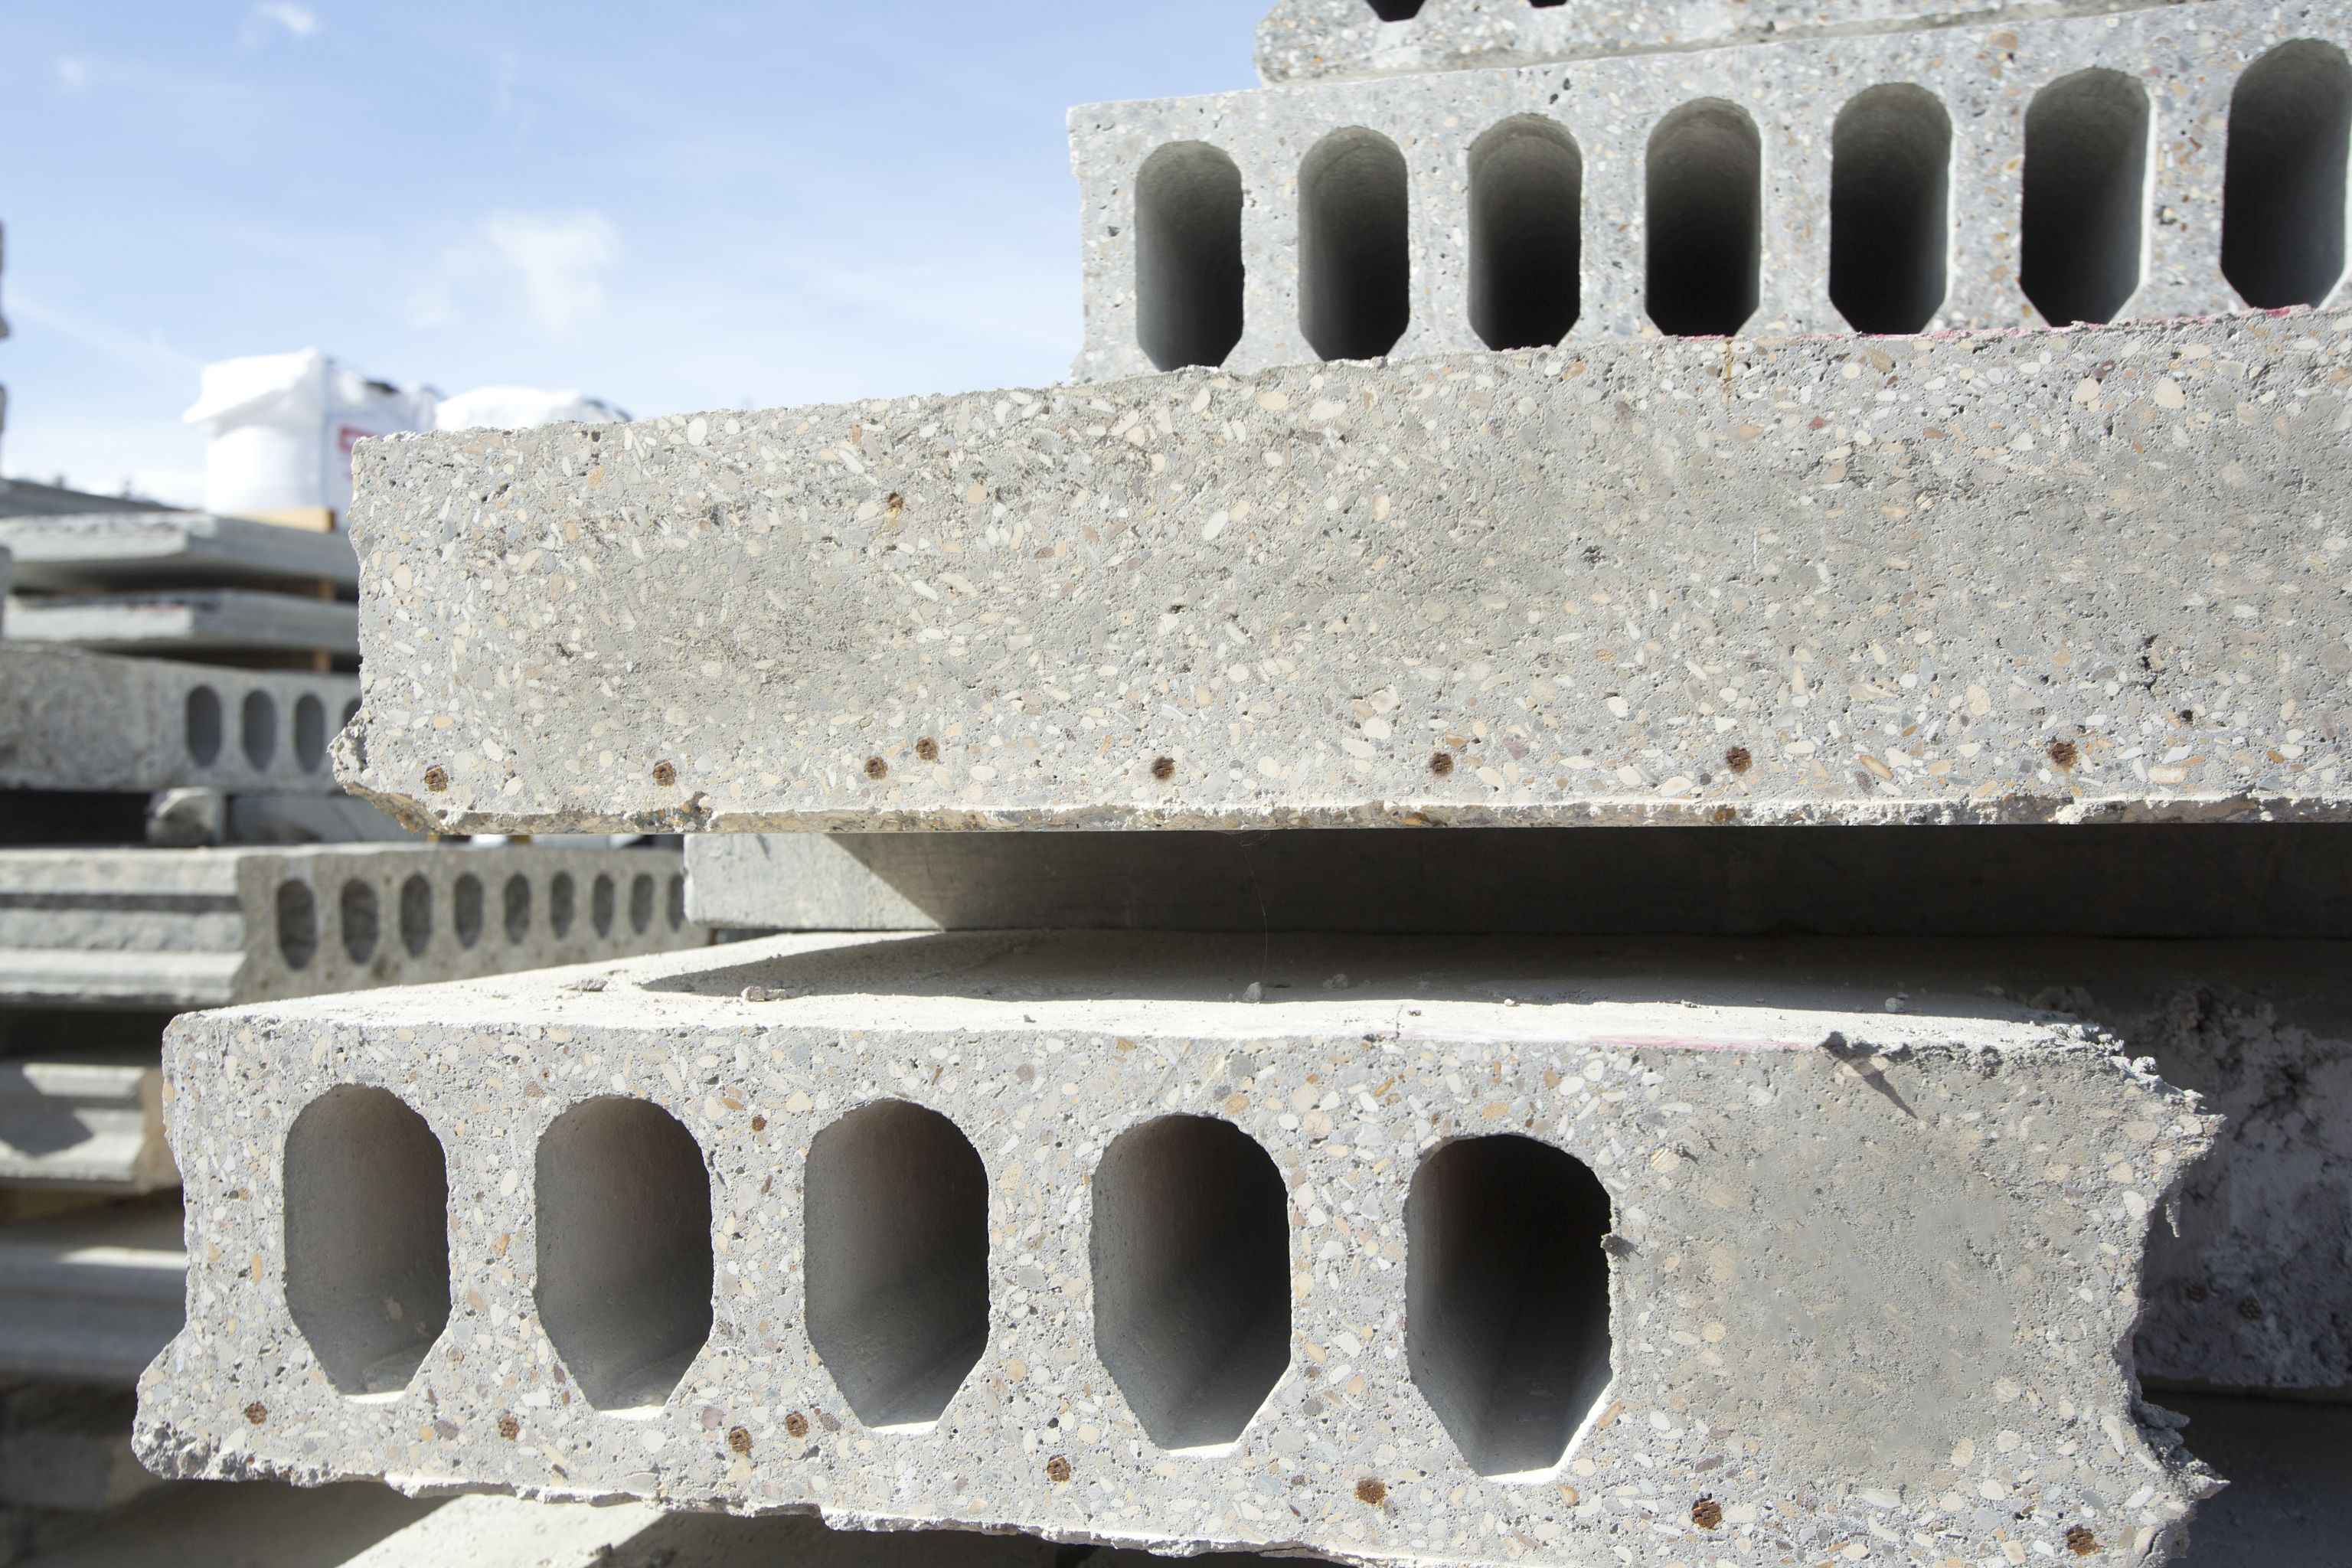 Hollowcore Precast Concrete Floors | Planks & Slabs | Milbank